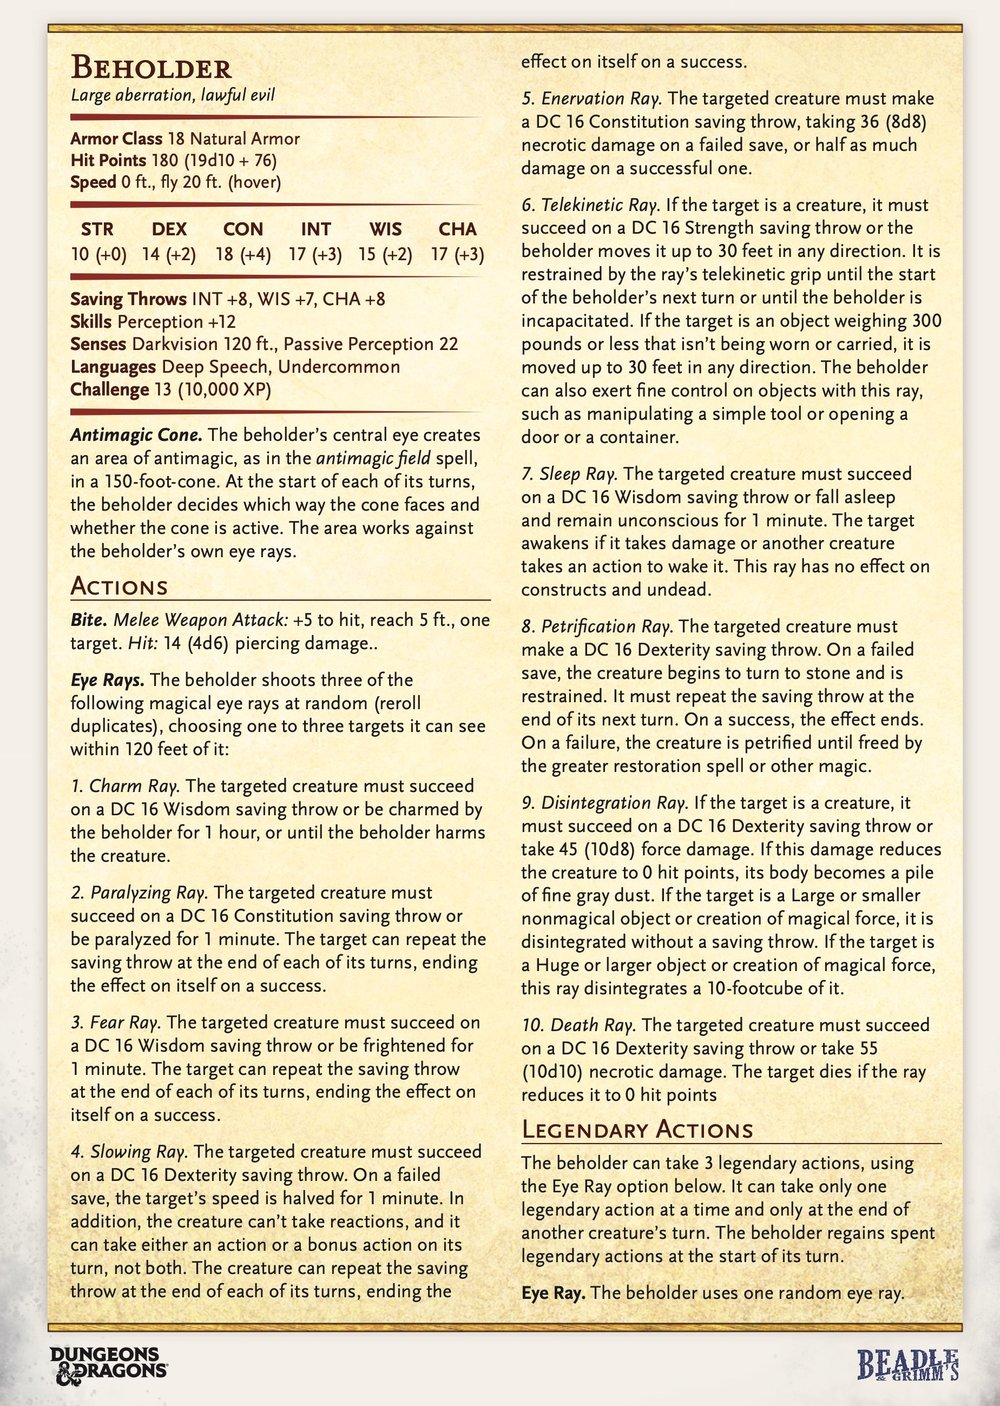 Encounter_card-Xanathar 2_bottom.jpeg